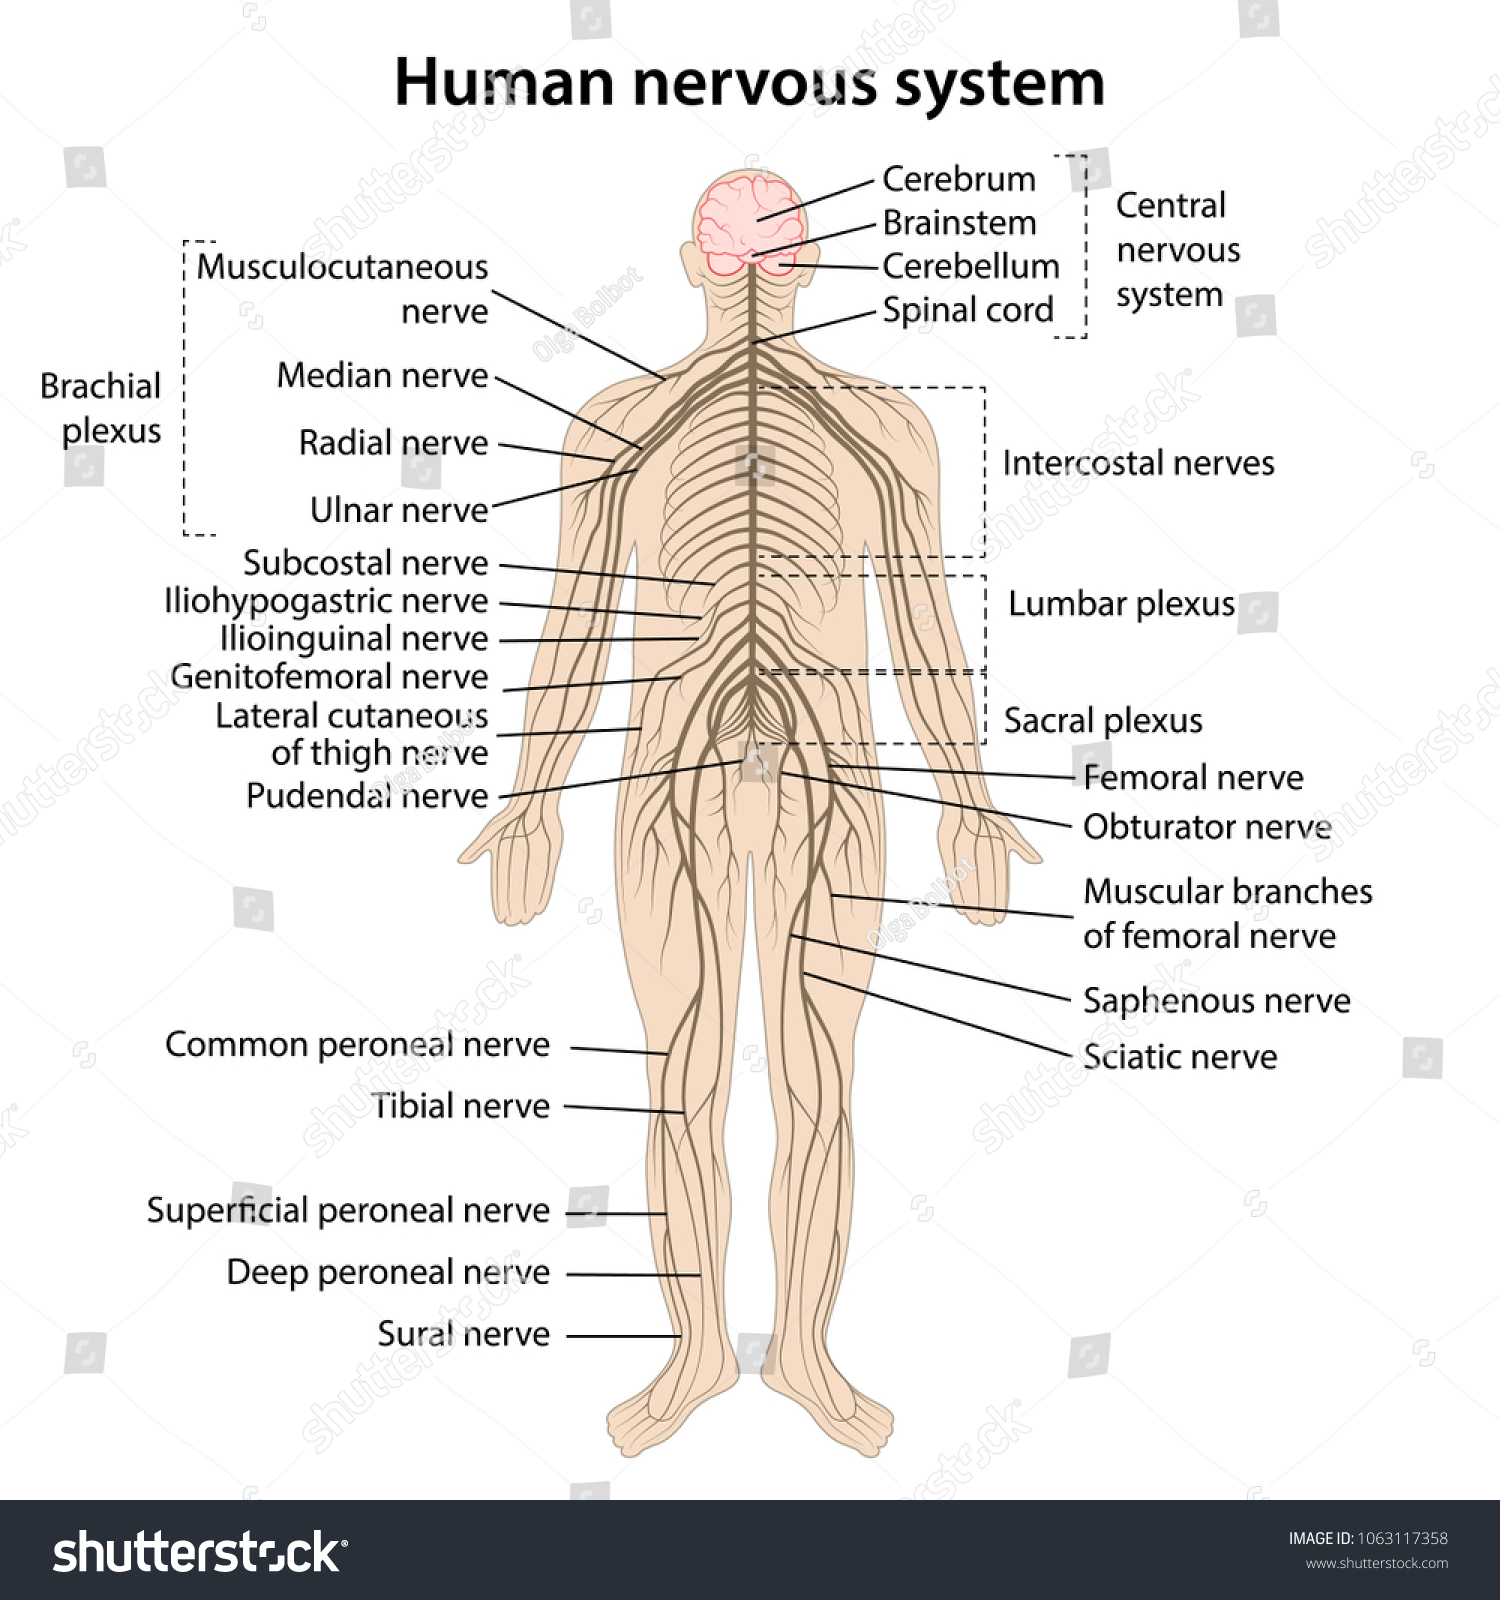 Human Nervous System Main Parts Labeled Stock Vector (2018 ...